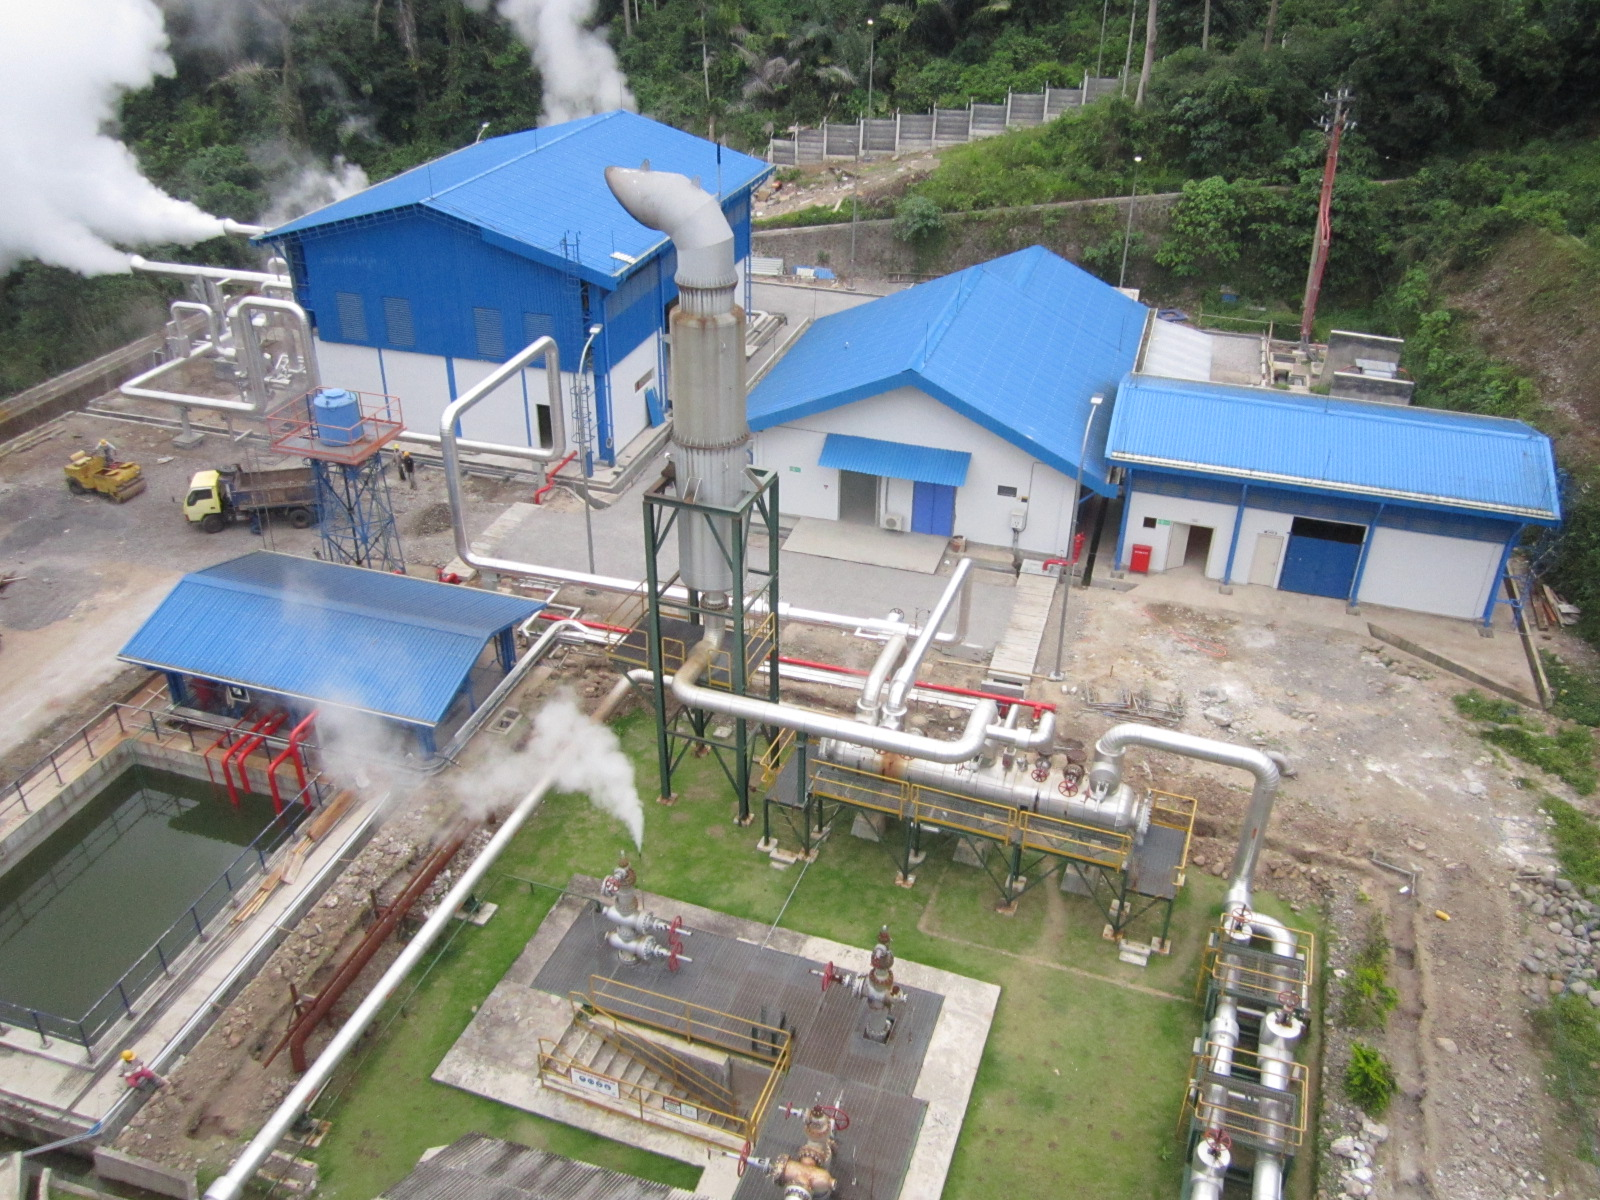 missioned Ulumbu 2 x 2 5 MW Geothermal Power Plant